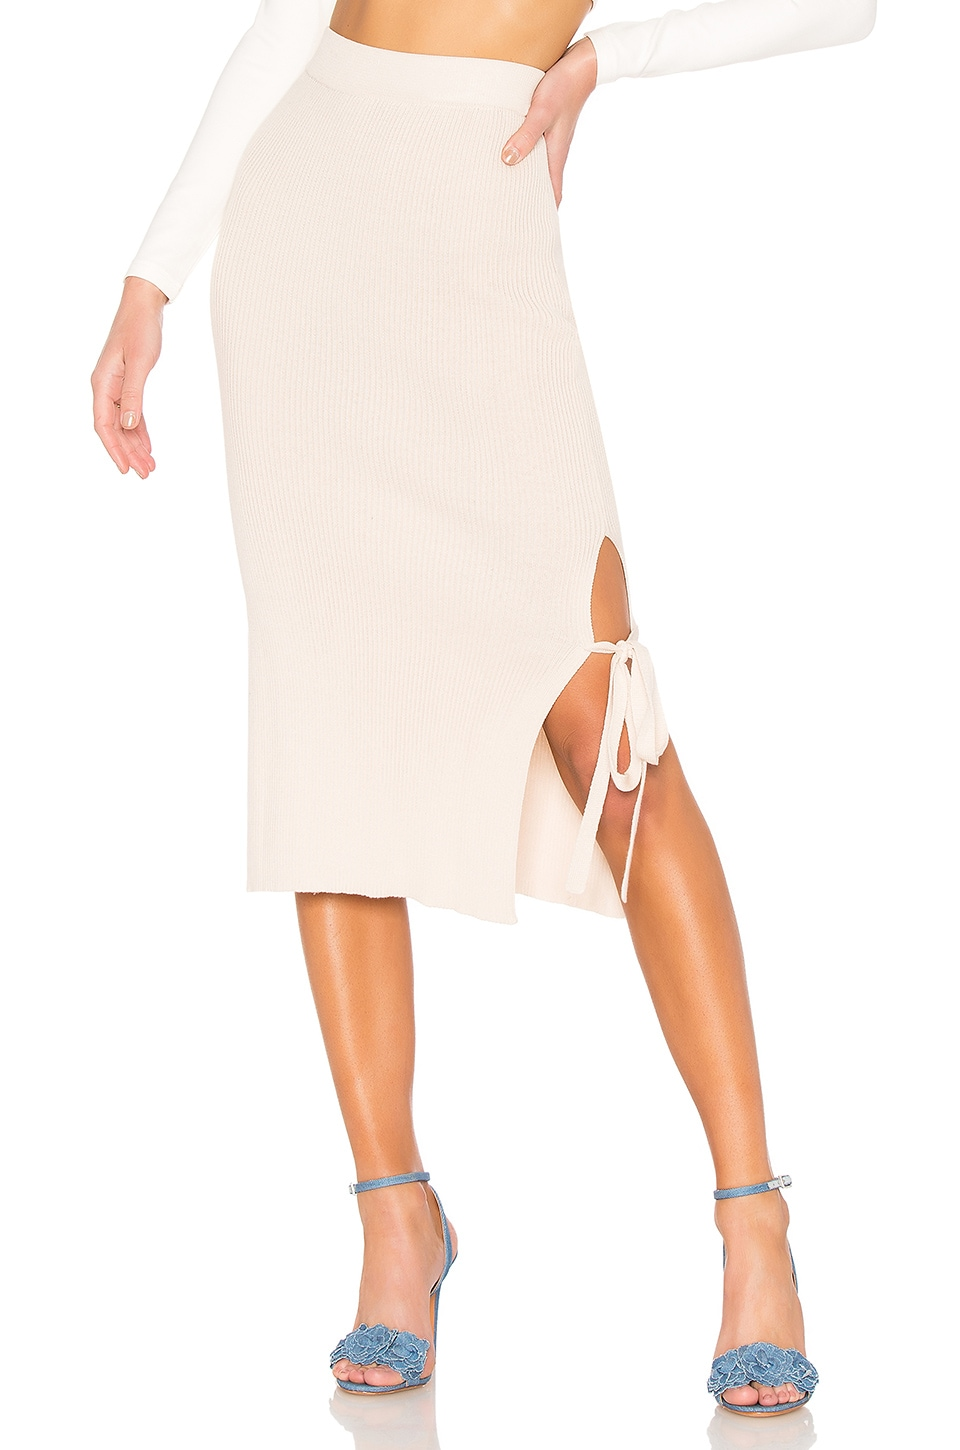 AYNI Lia Tie Skirt in Pale Pink